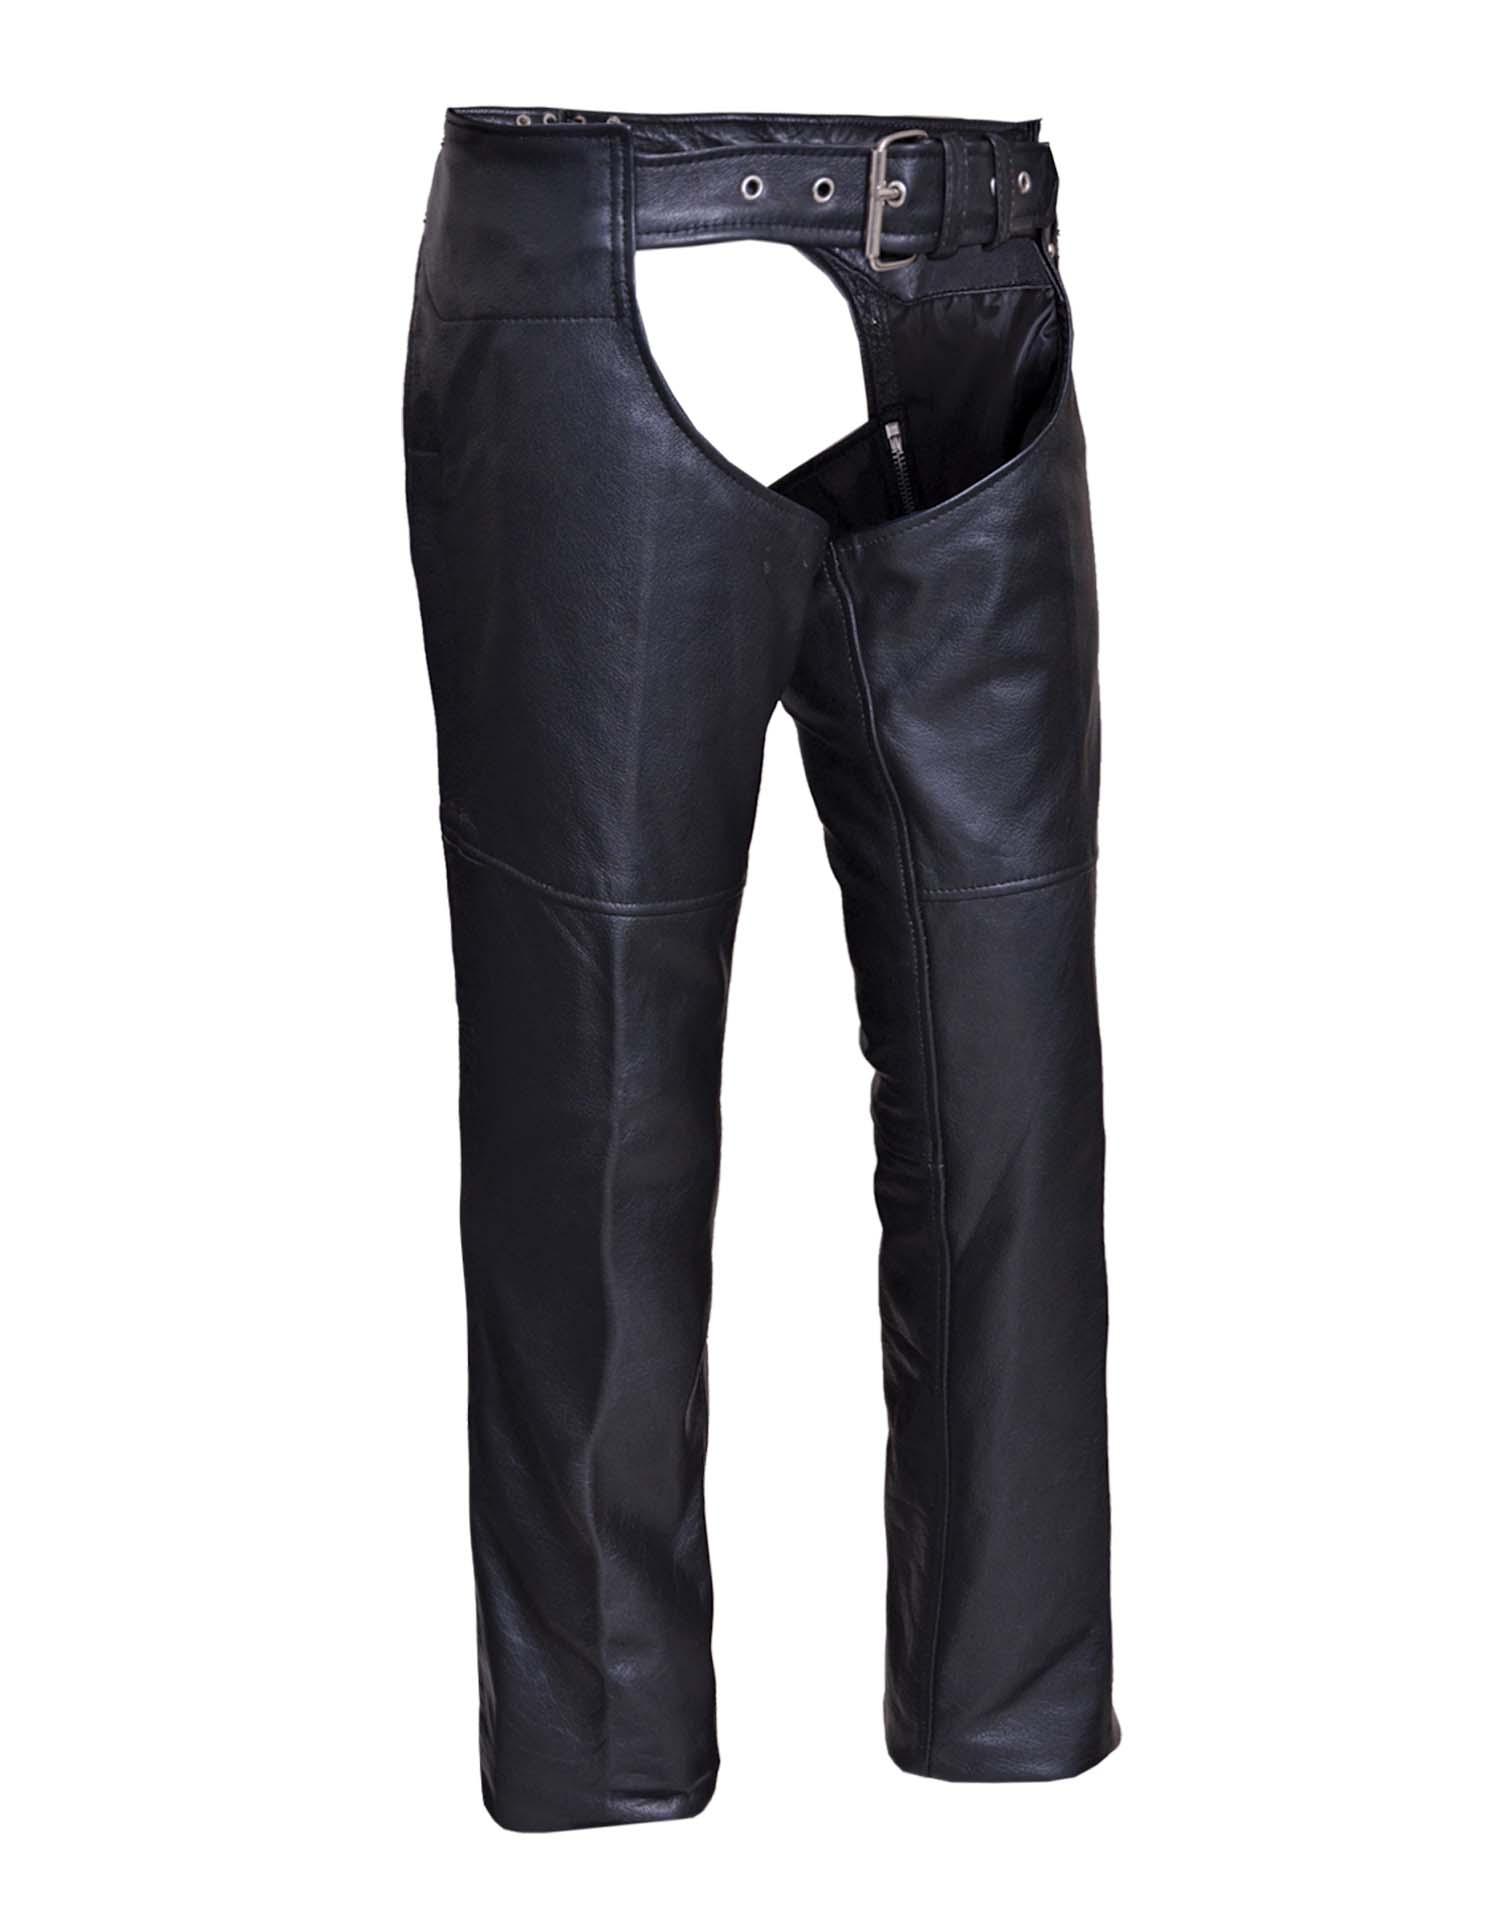 Ladies Low-Rise Premium Black Leather Chaps (Size: 2X-Small)